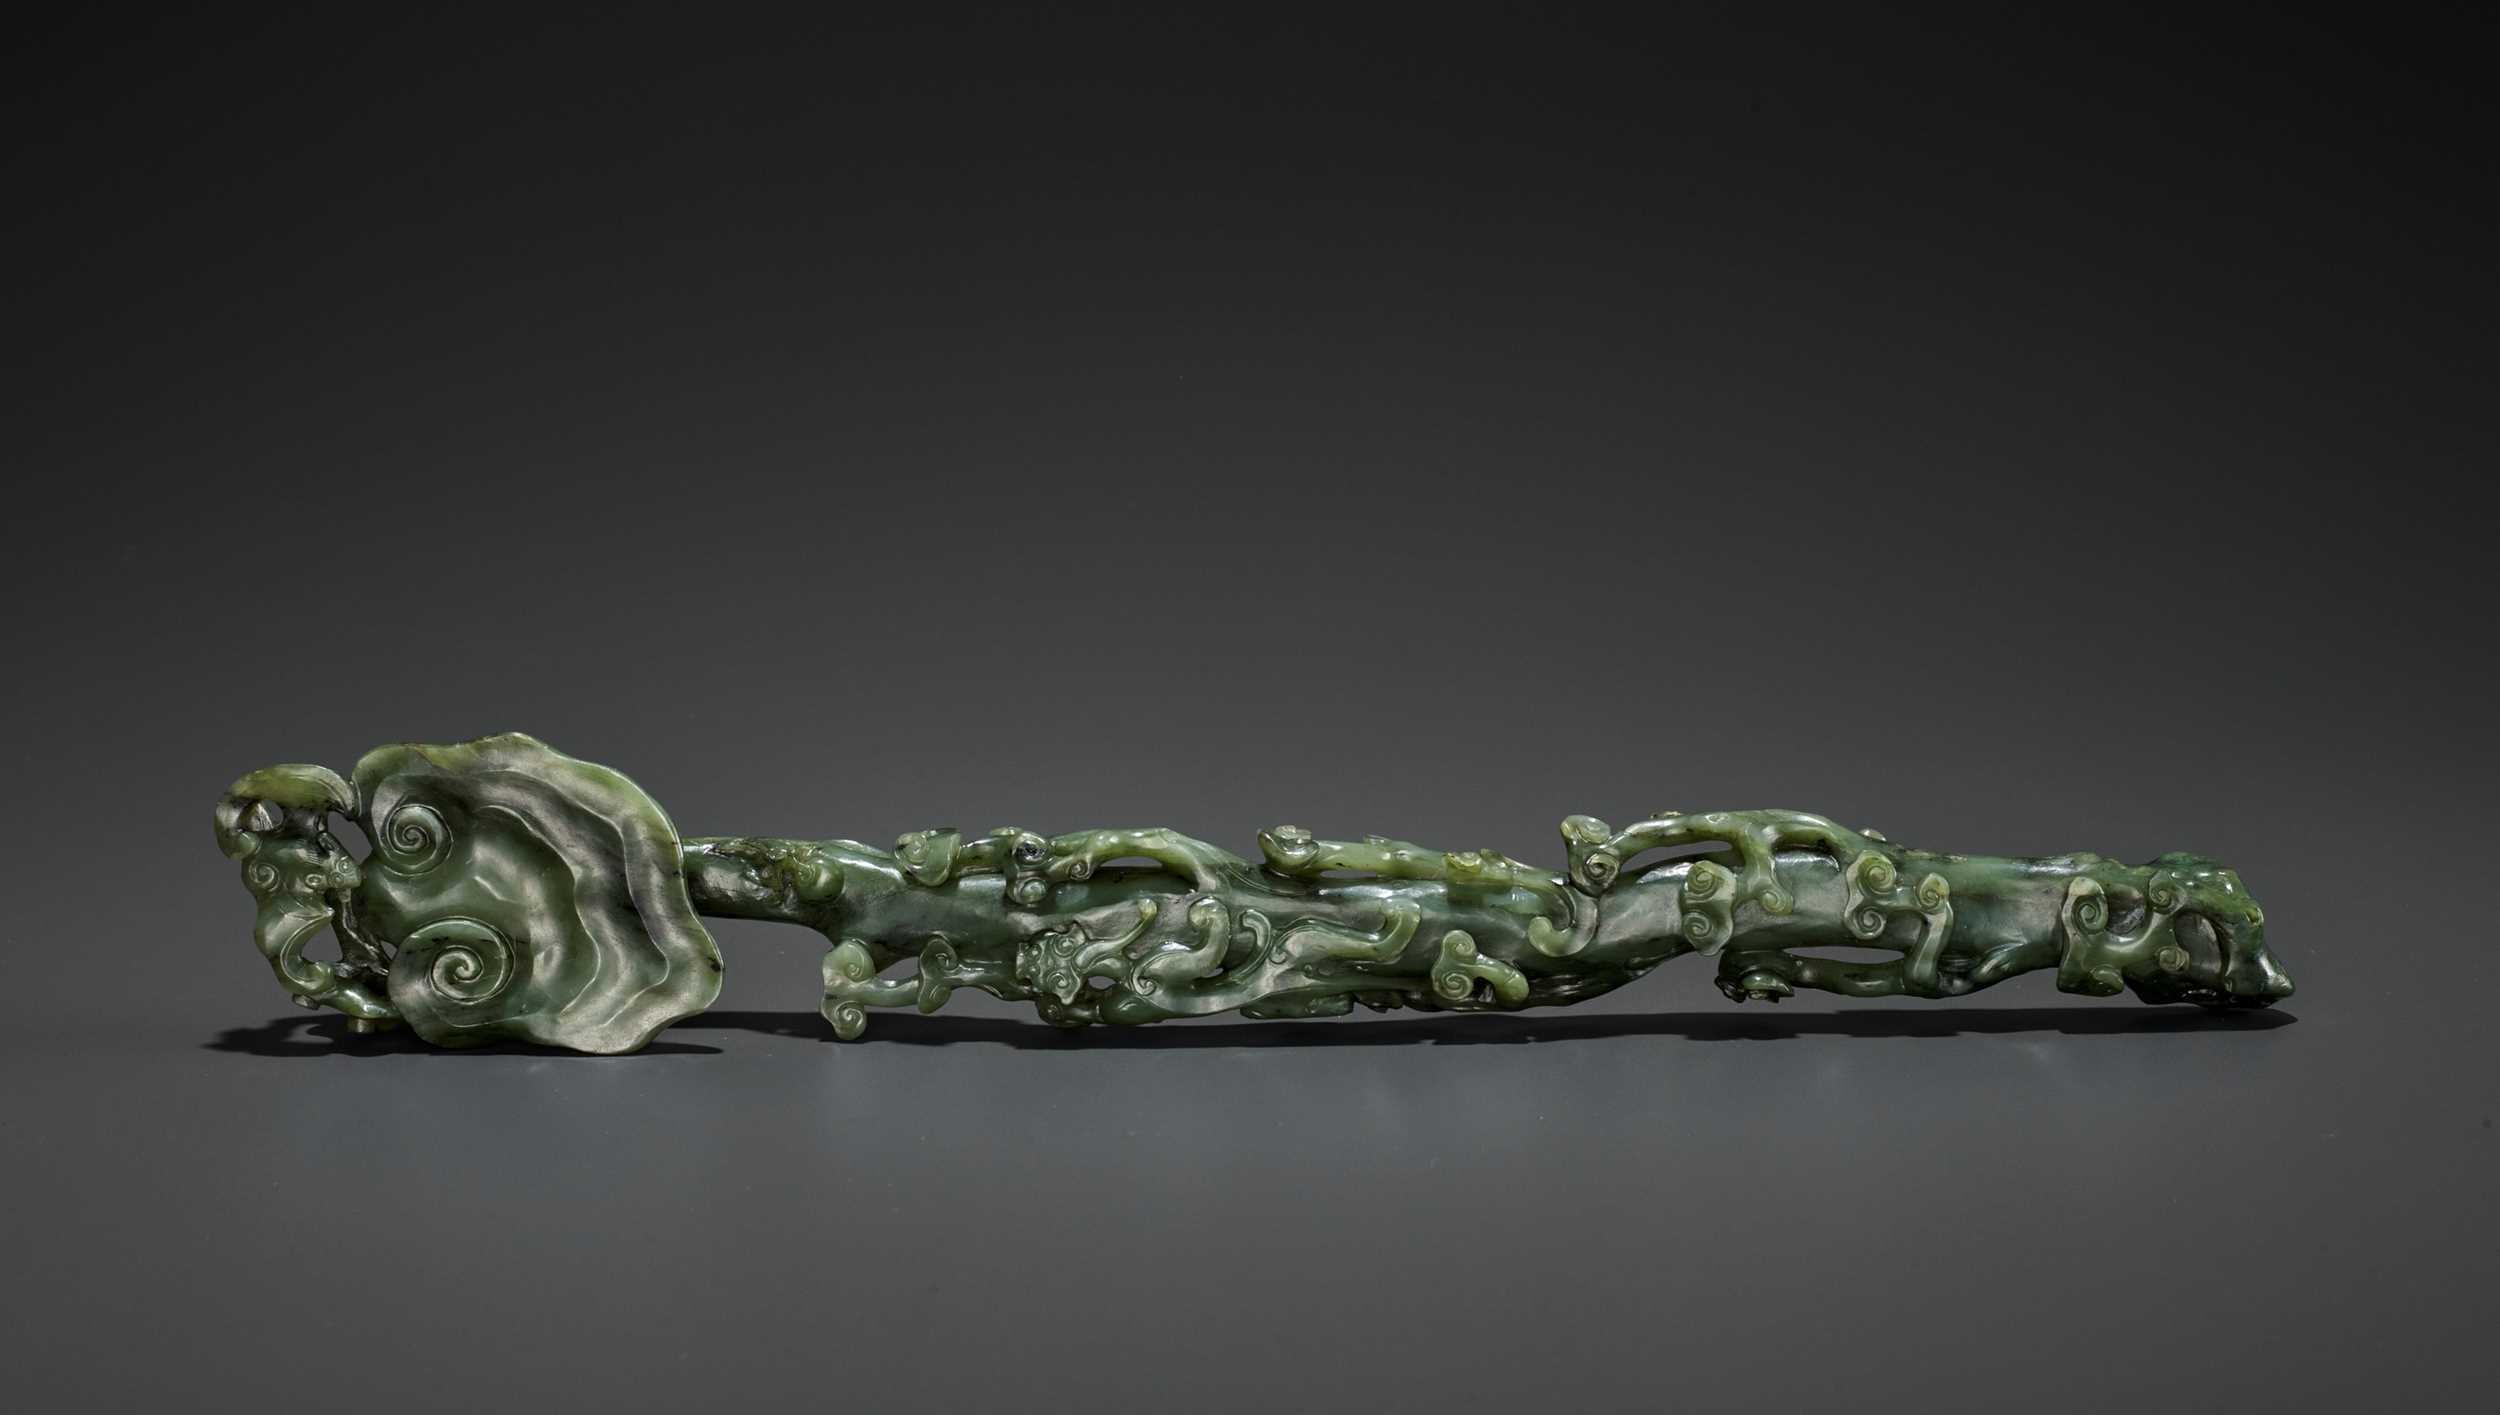 Lot 70 - A SPINACH-GREEN JADE RUYI SCEPTER, MID-QING